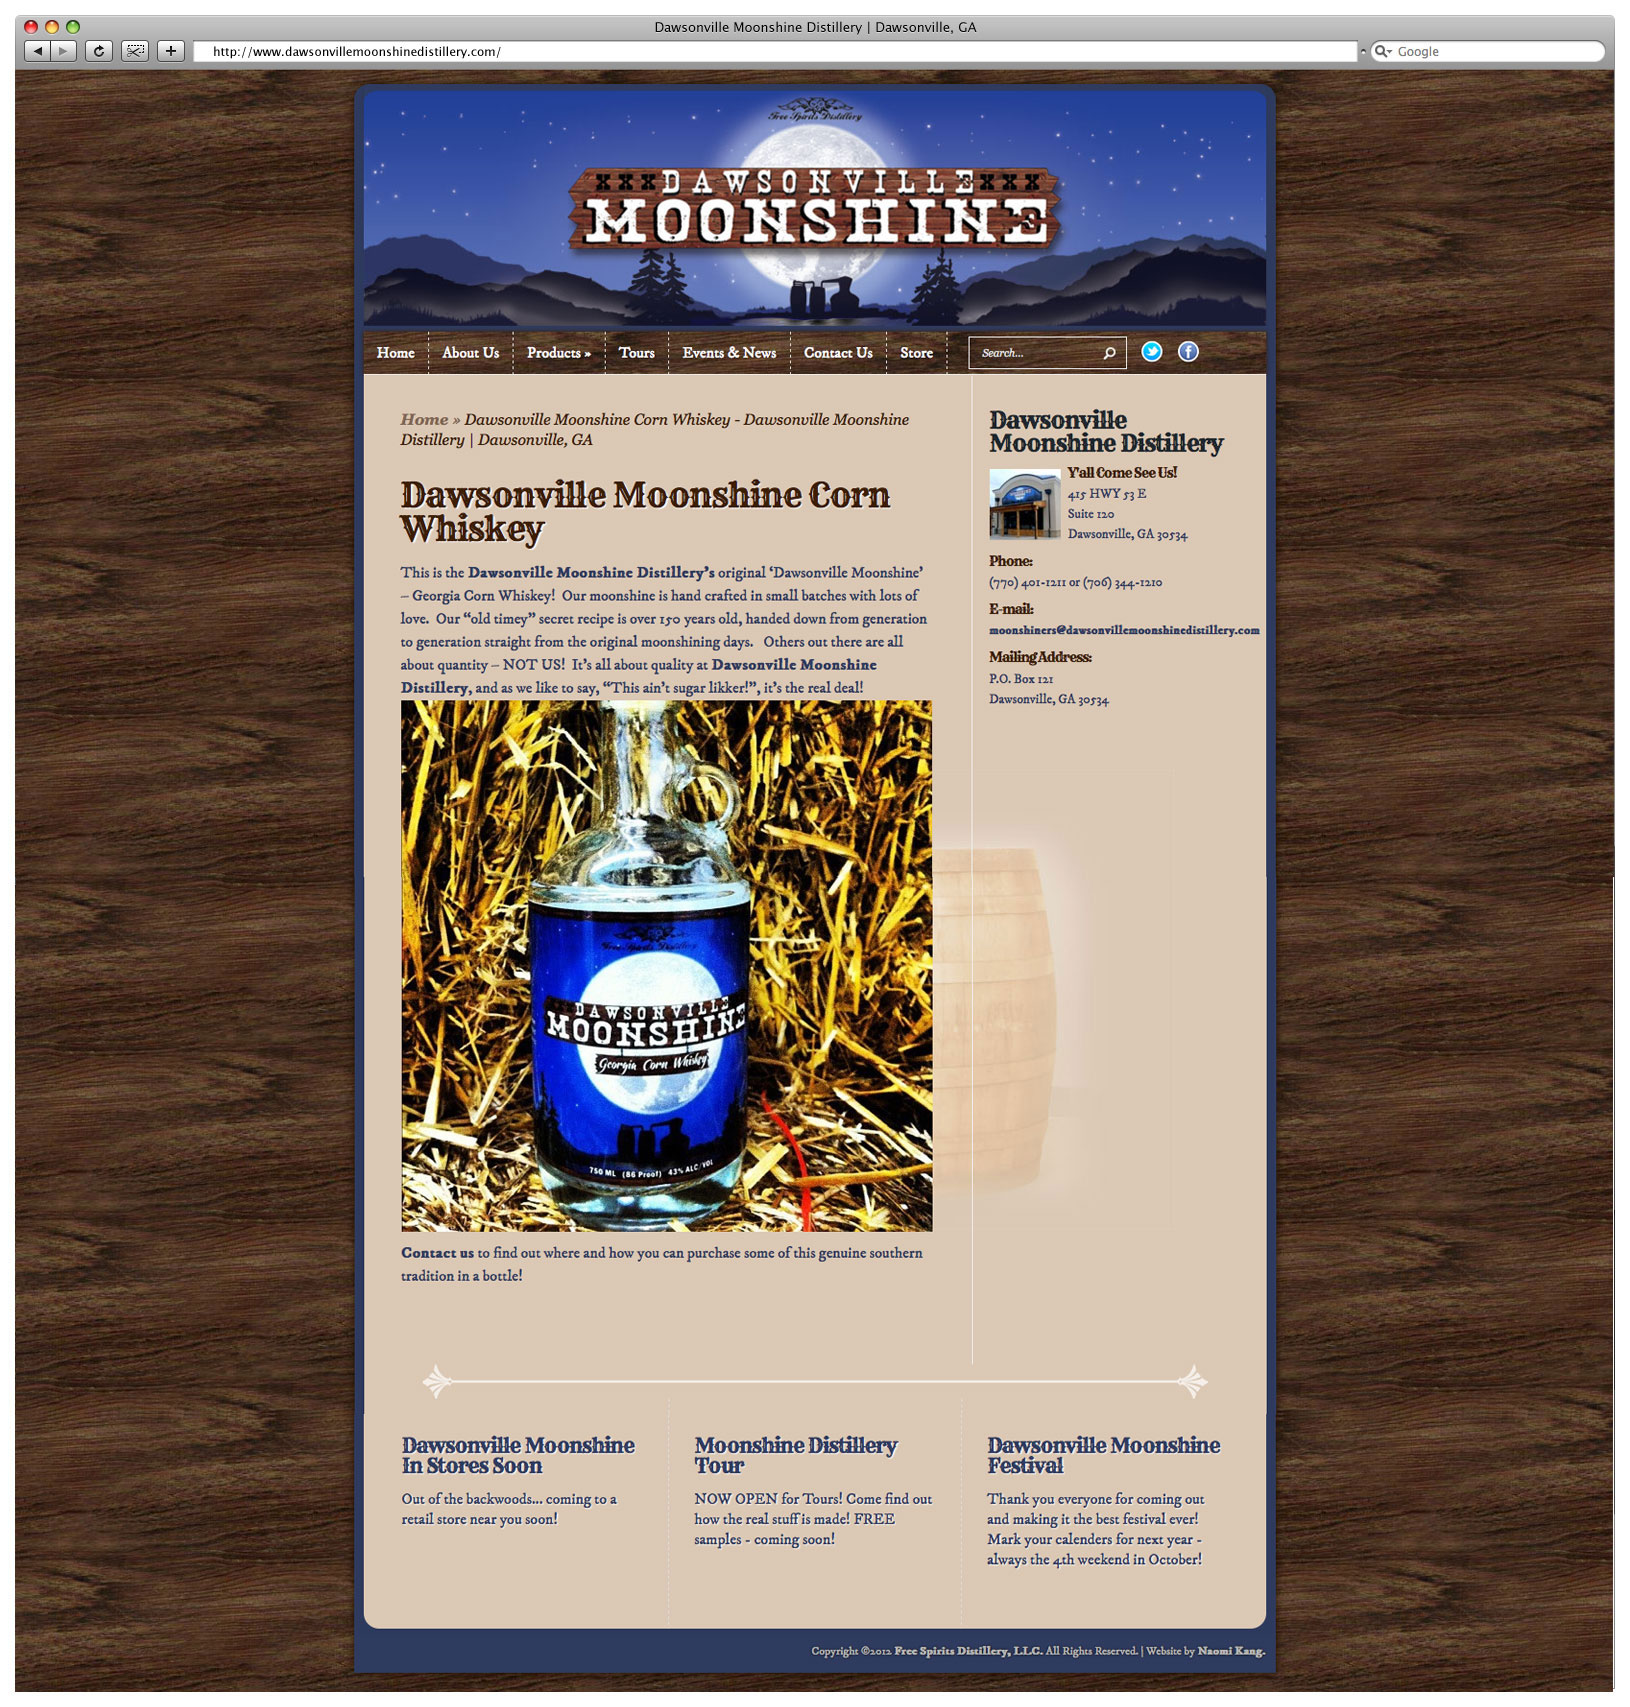 Dawsonville Moonshine Distillery Website – Product Page